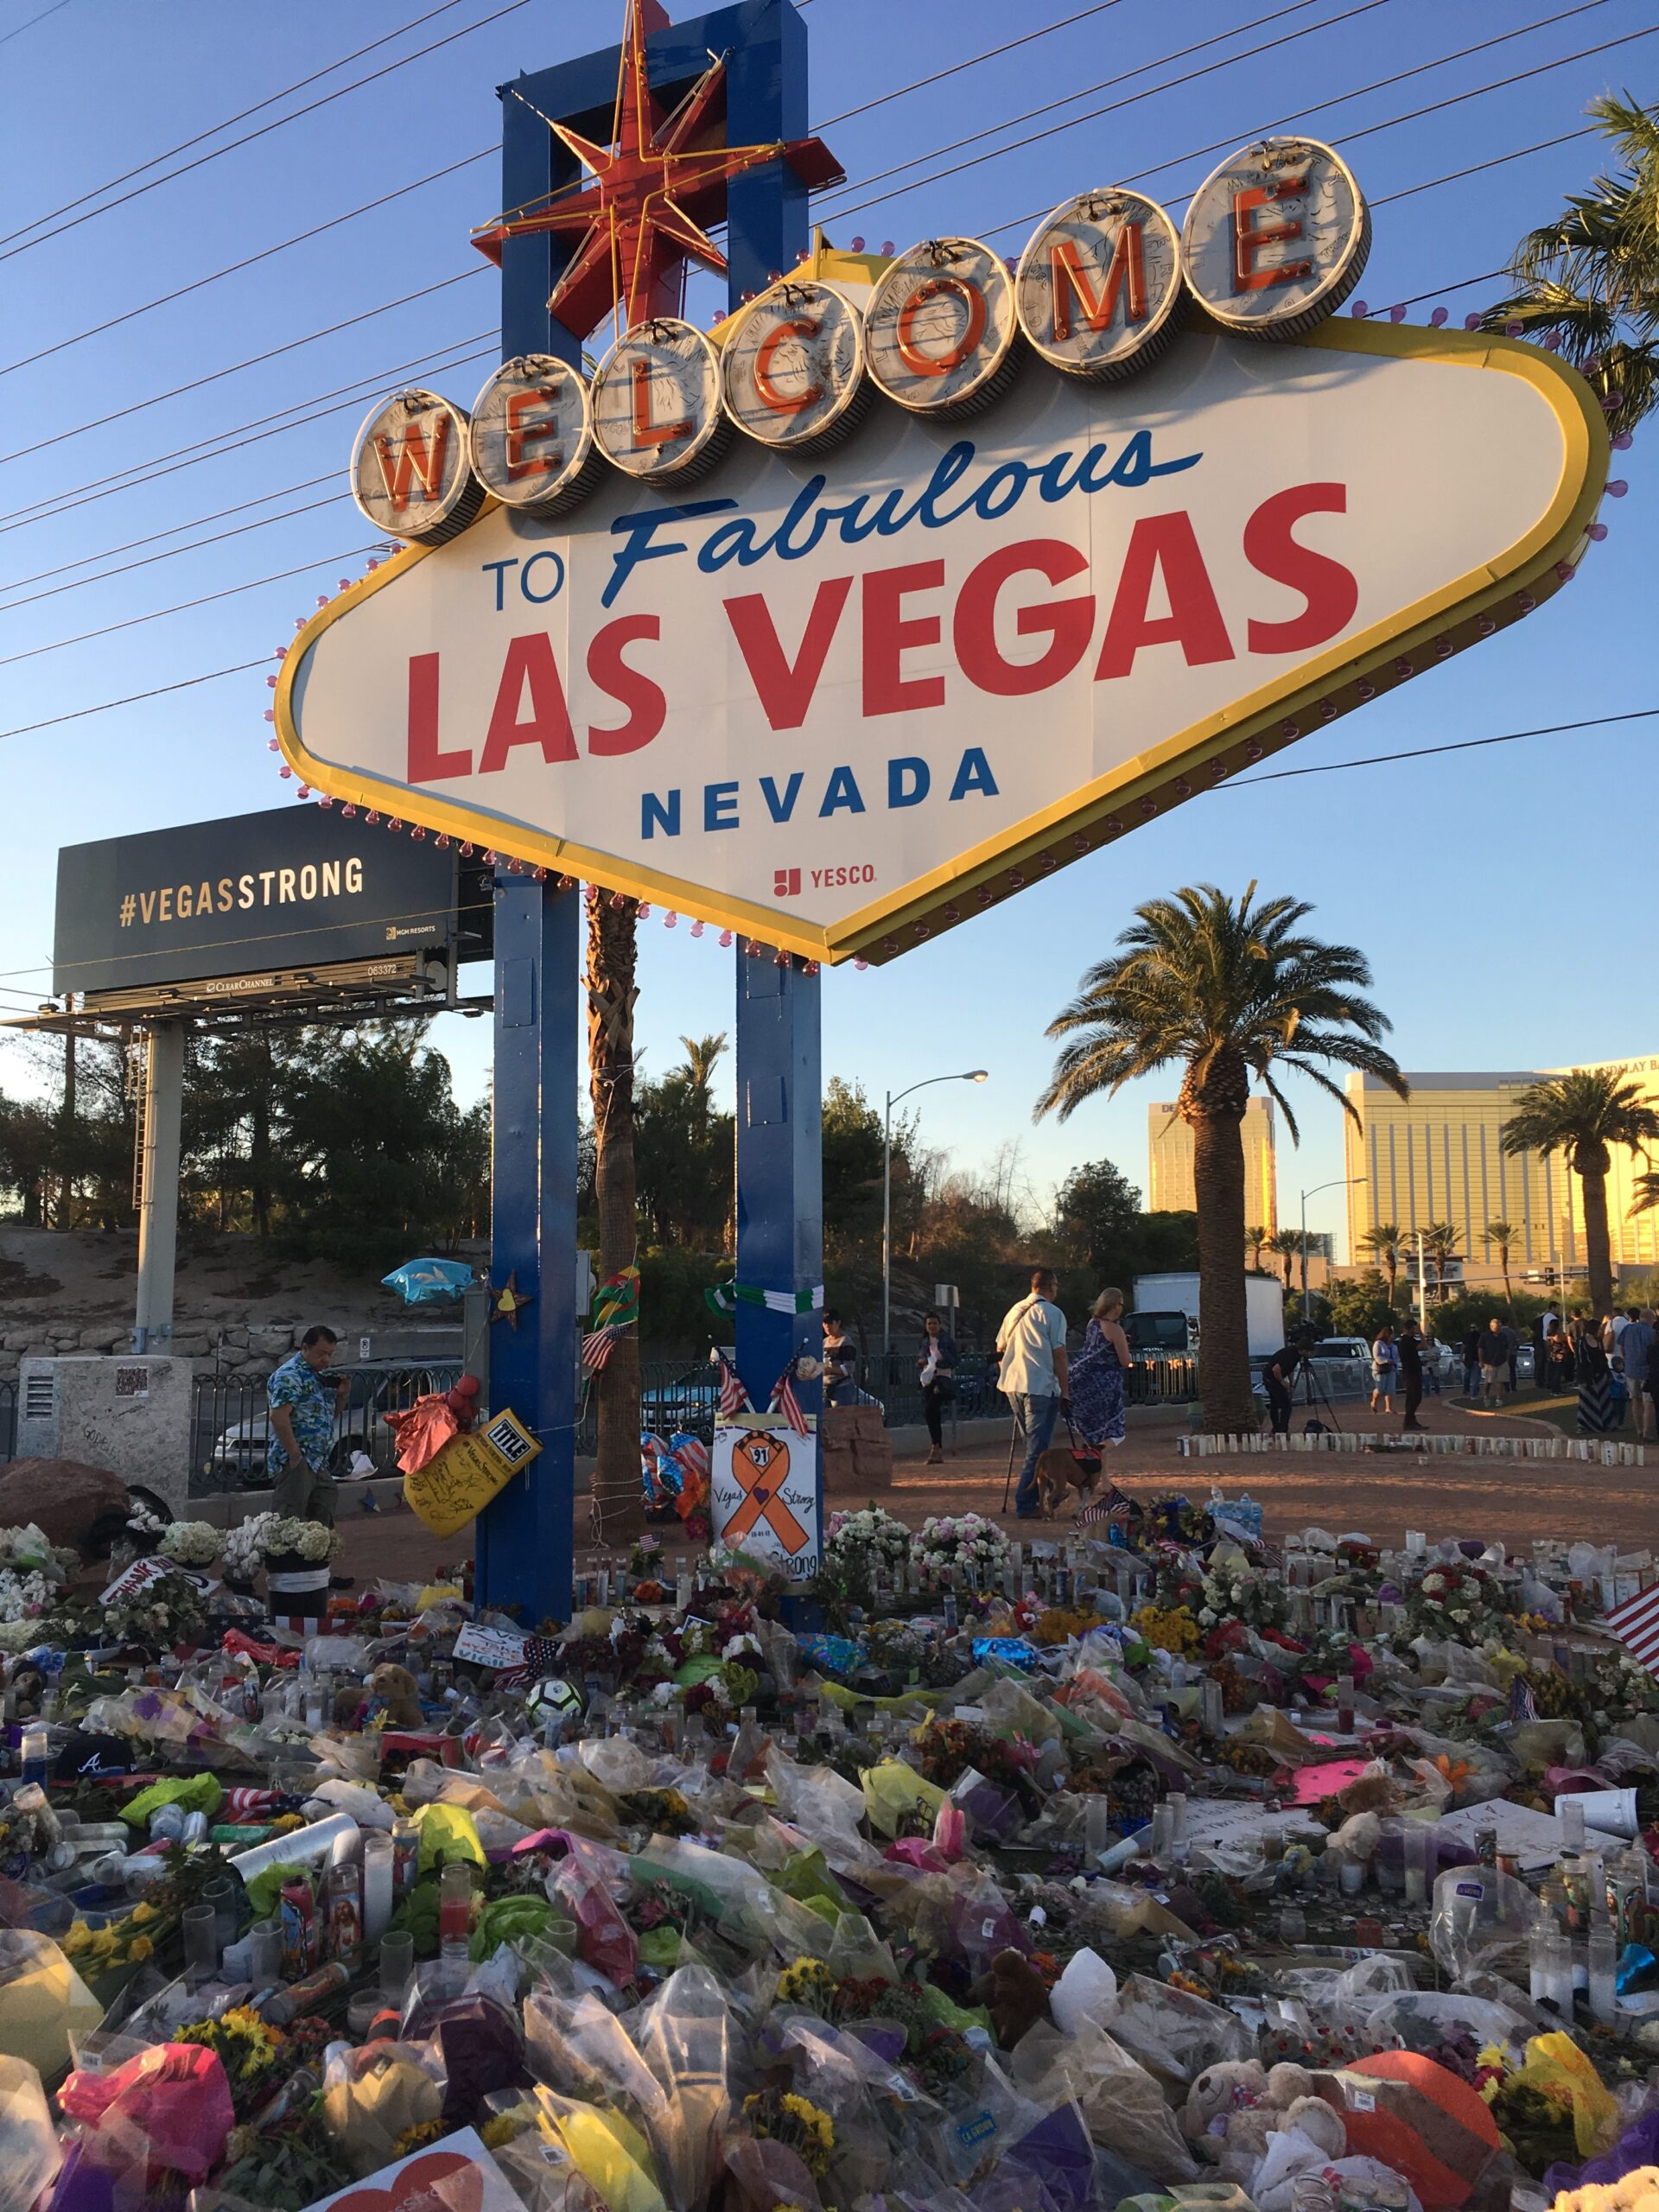 Memorial to victims of the 2017 Las Vegas shooting, where 58 people were killed and 422 were injured. (Rmvisuals, CC BY-SA 4.0, Wikimedia Commons)